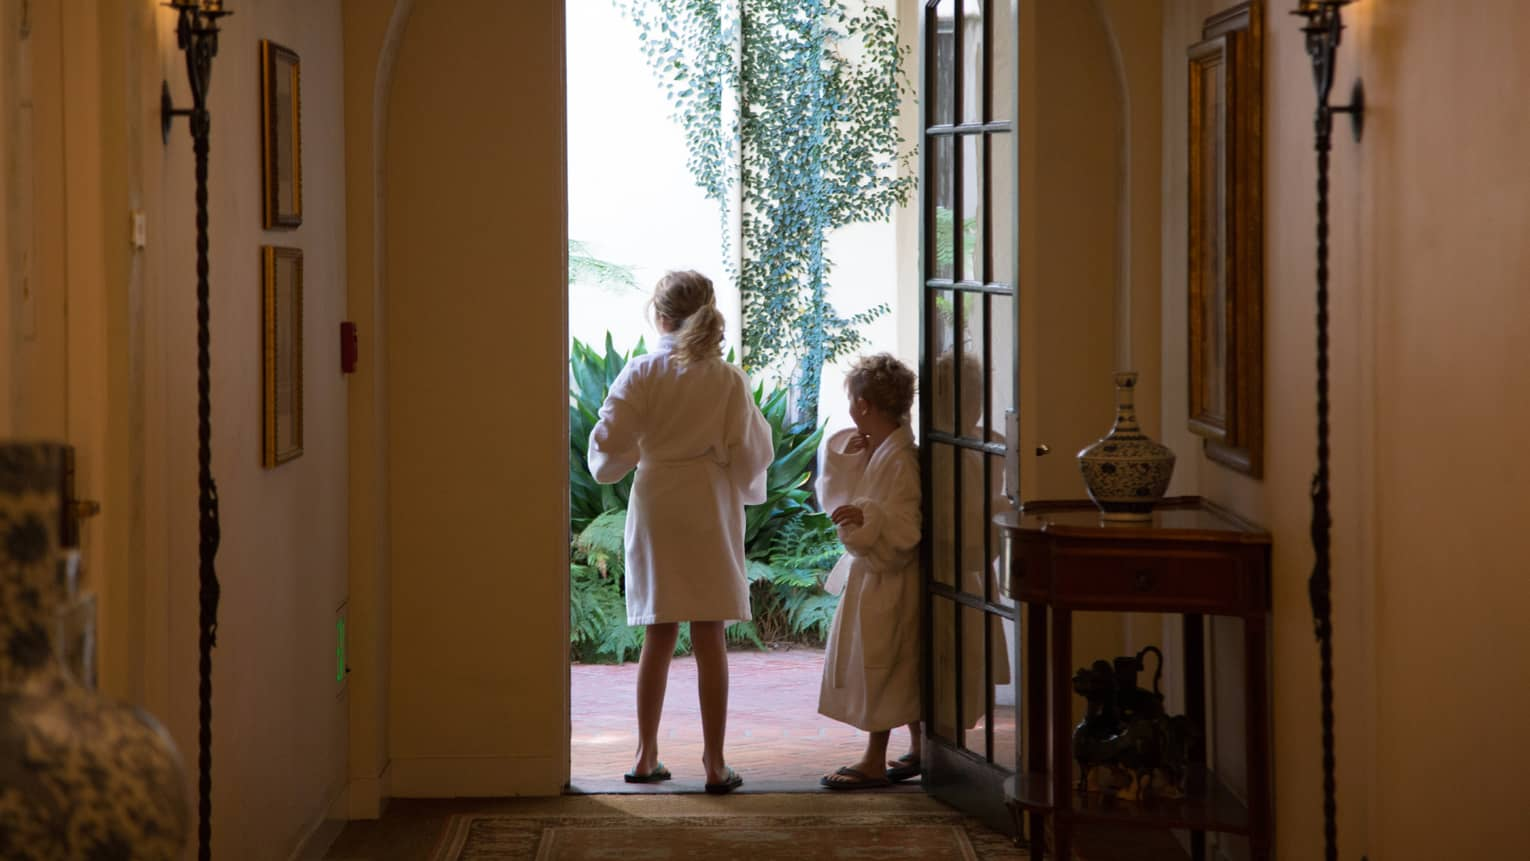 Two children wearing white bathrobes stand in hotel bungalow doorway, look outside